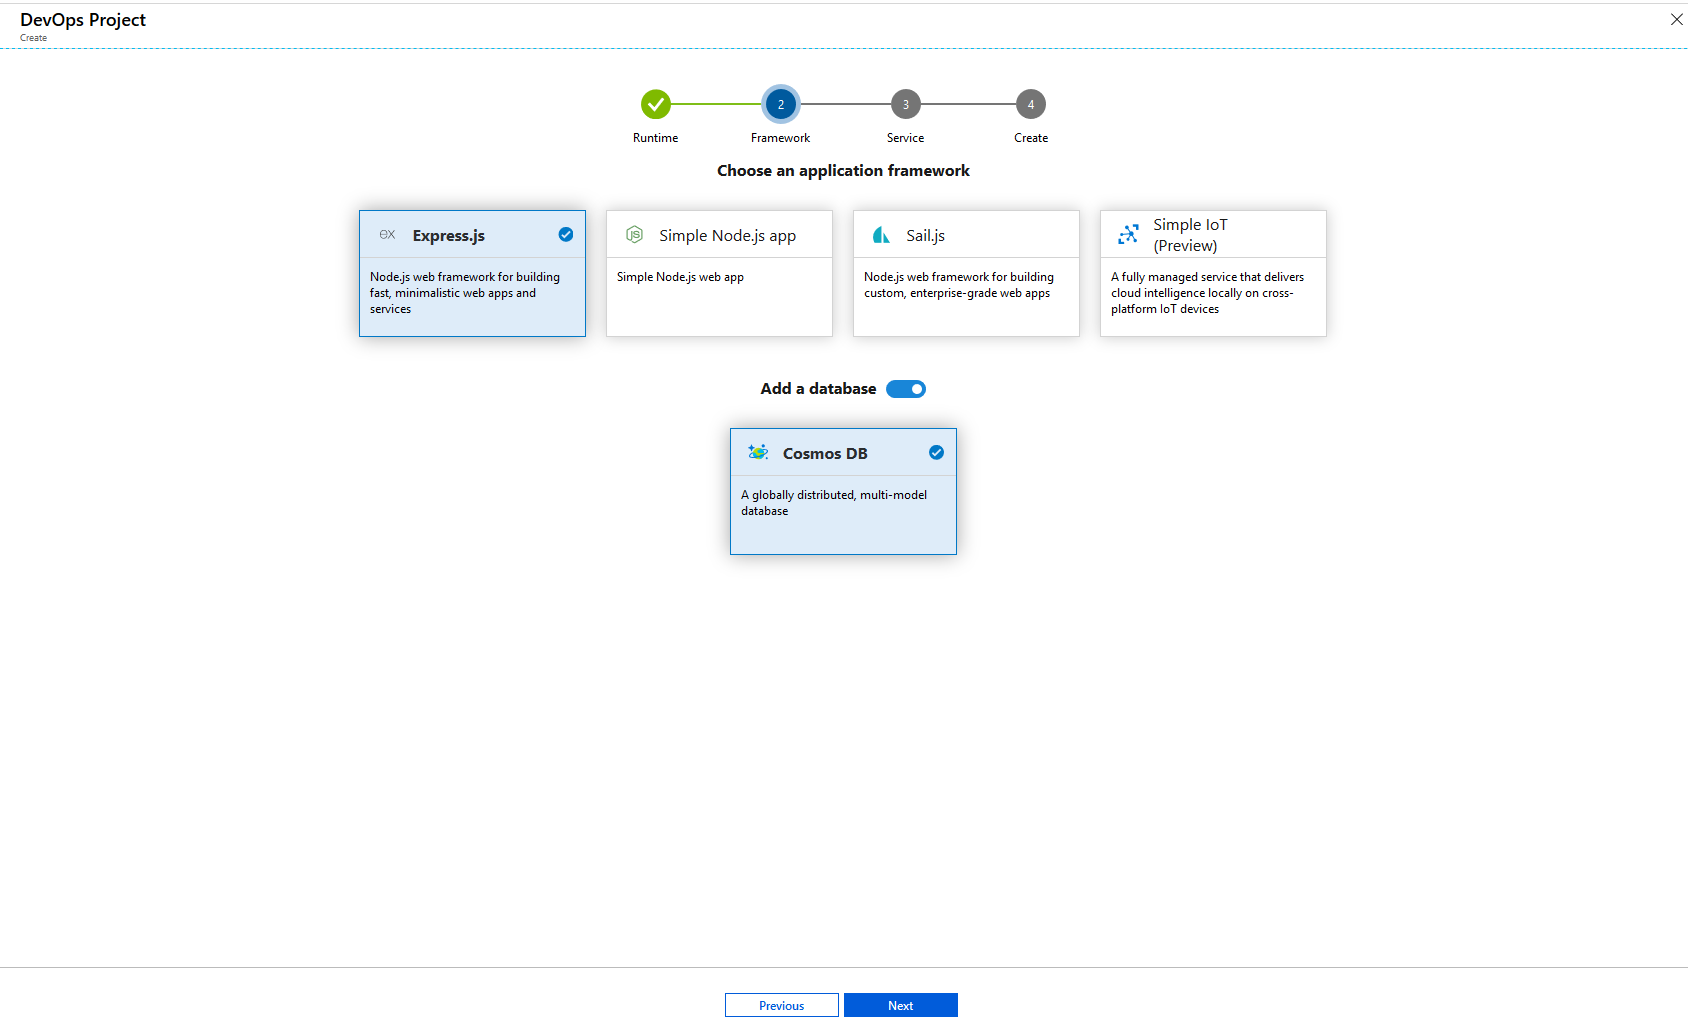 Azure DevOps Projects supporting Azure Cosmos DB and Azure Functions